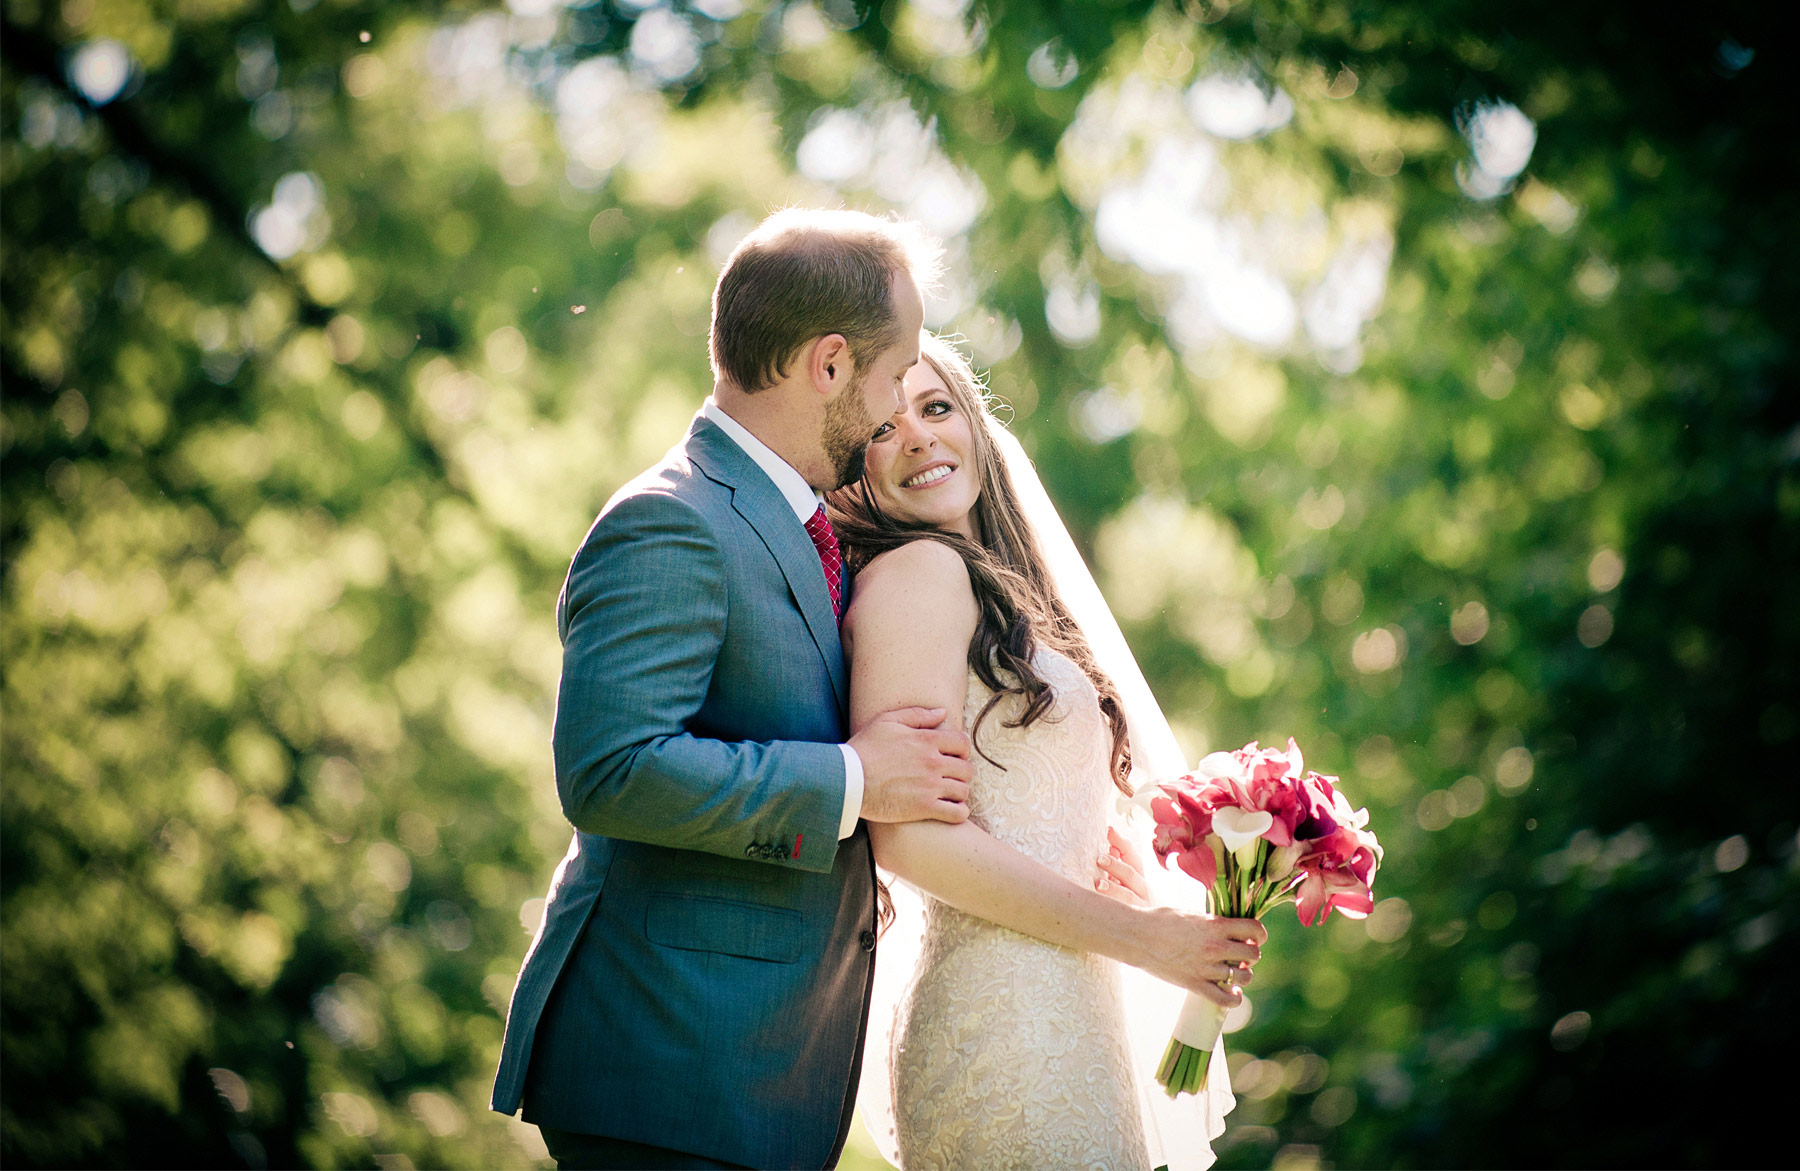 21-Minneapolis-Minnesota-Wedding-Photographer-by-Andrew-Vick-Photography-Summer-Embrace-Woods-Bride-Groom-Natalie-and-Andrew.jpg